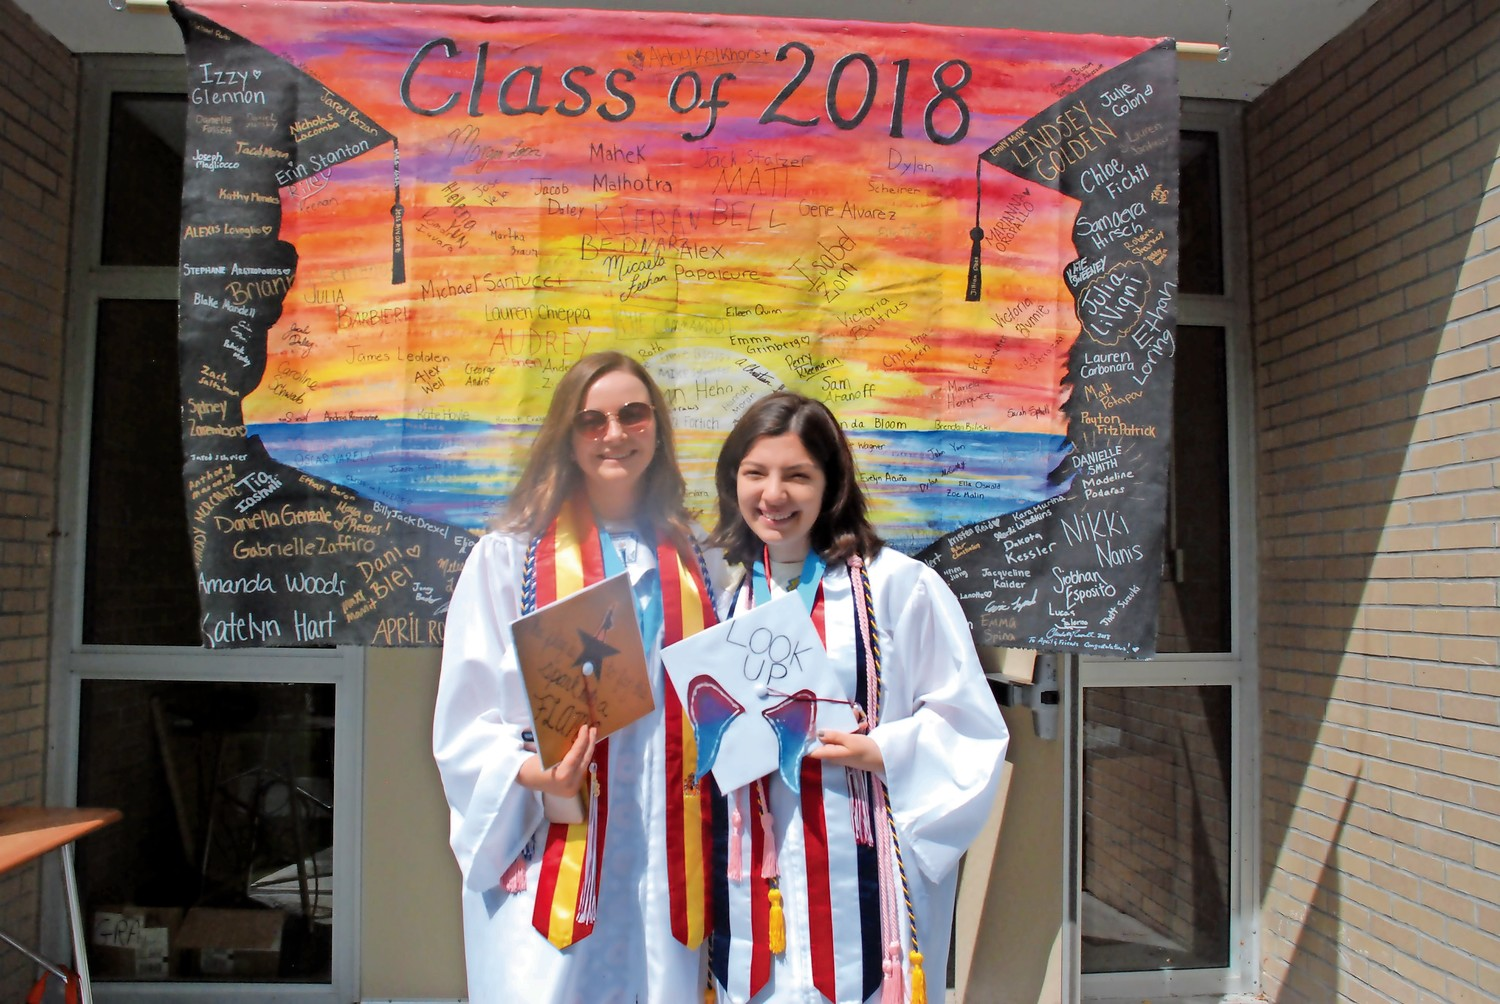 Siobhan Esposito and Caroline Schwab with the senior banner before the rest of the class took the field for commencement. The two led the crowd in singing North Shore's alma mater.